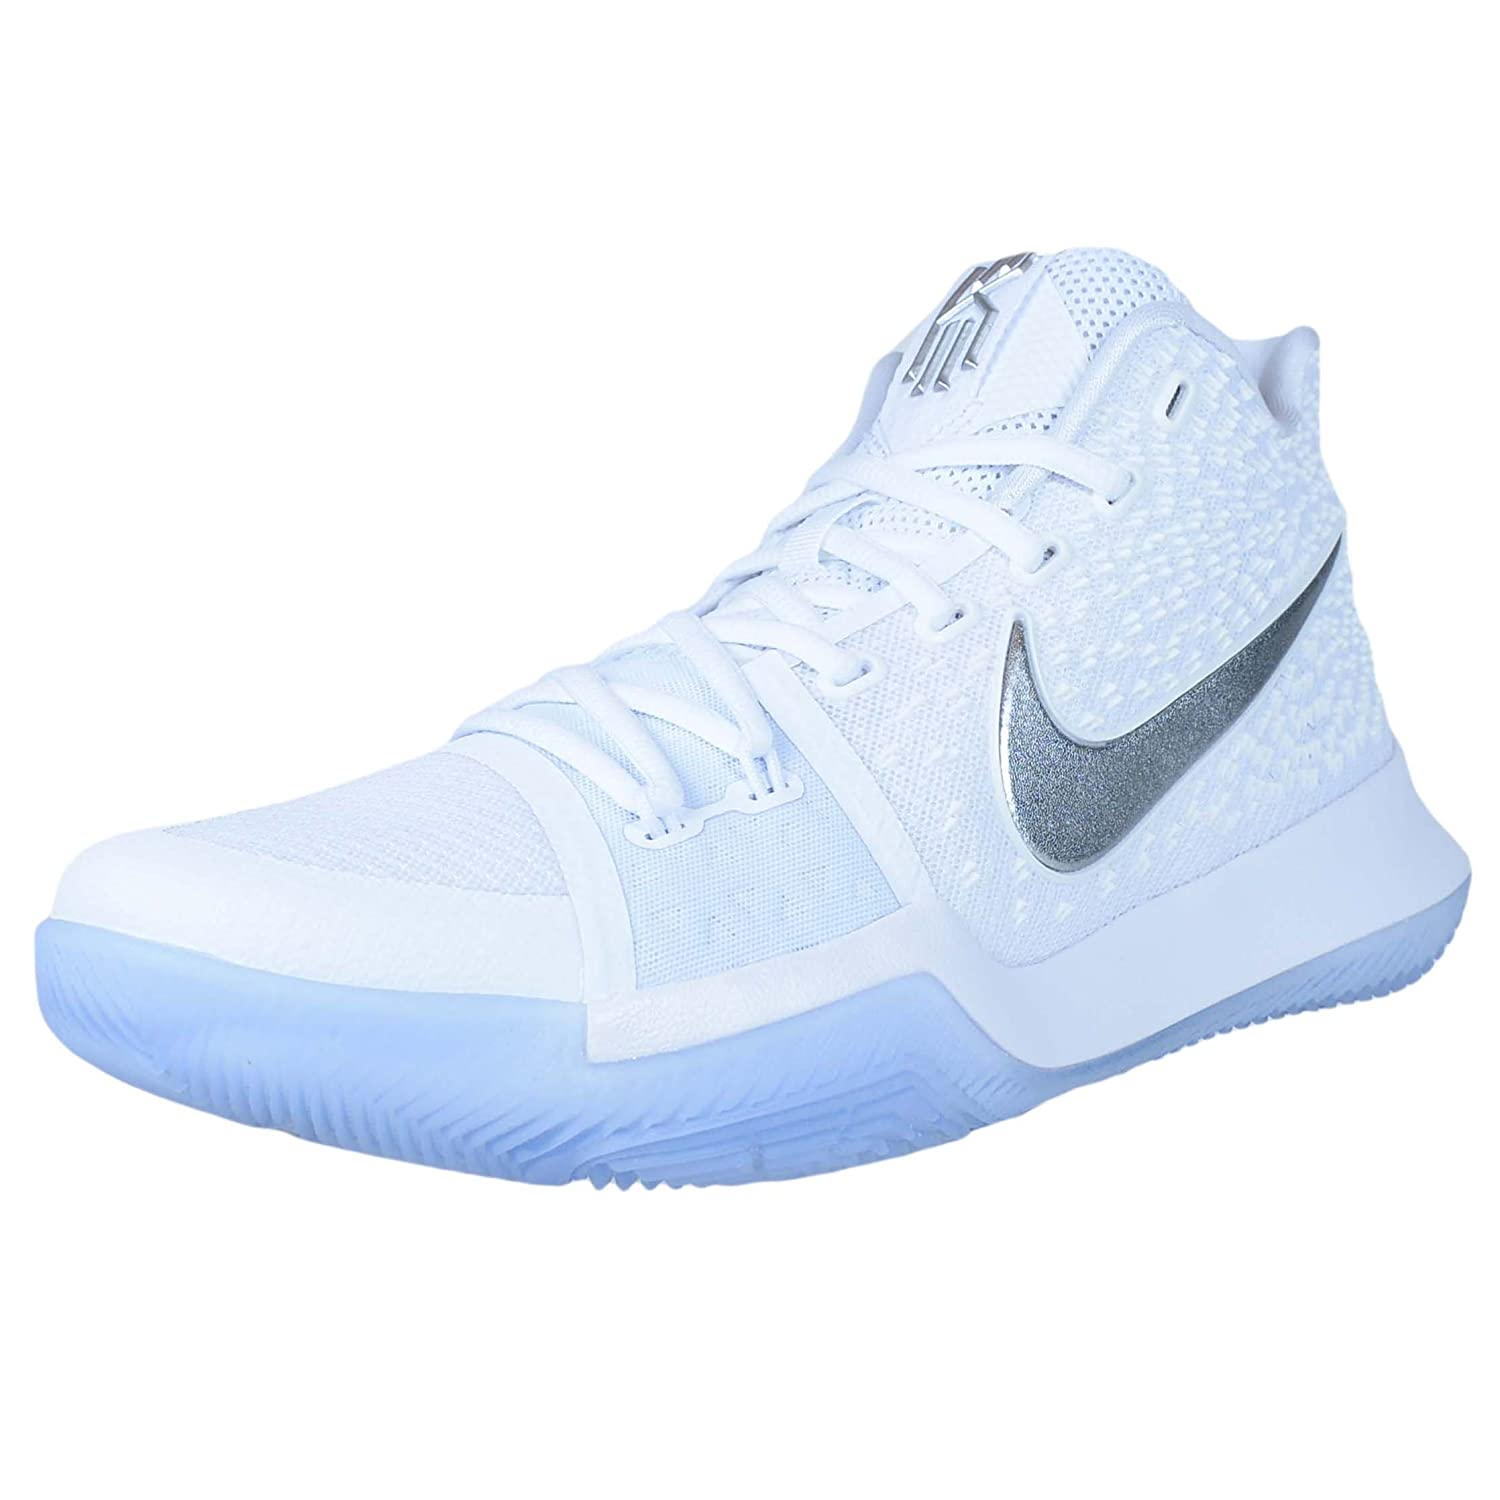 1fbacea0784 Nike Mens Kyrie 3 Trainers 852395 007  Amazon.co.uk  Shoes   Bags